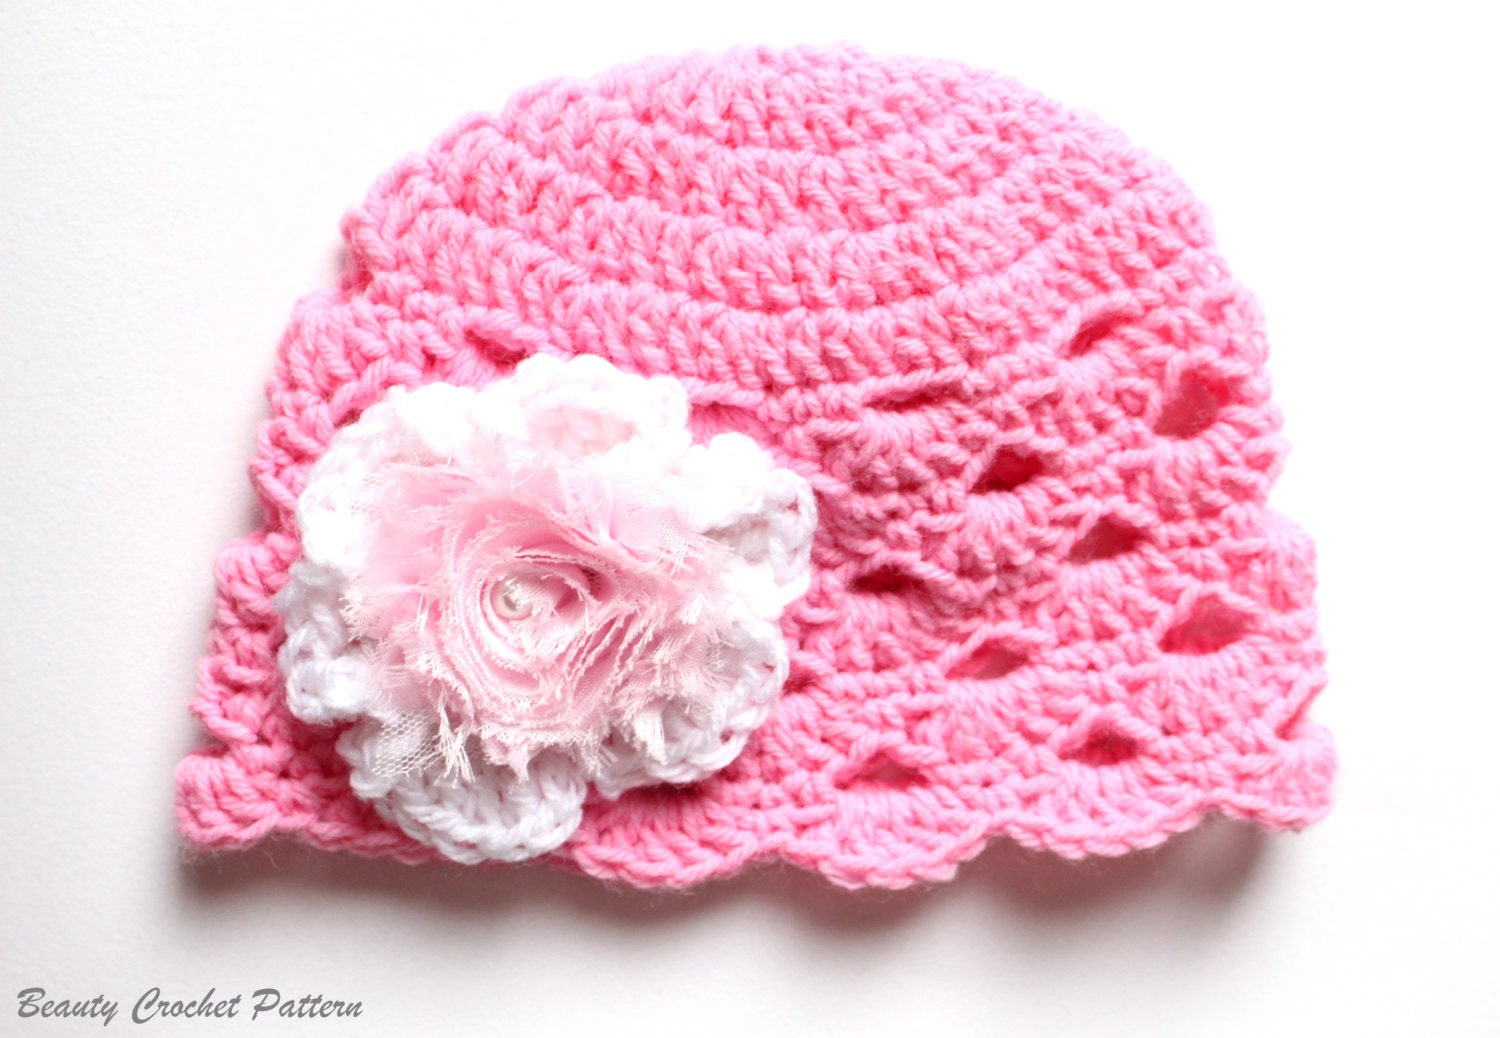 Baby girl hat with flower baby girl hat crochet pattern toddler baby girl hat with flower baby girl hat crochet pattern toddler hat pattern toddler girl hat pattern crochet hat pattern for kids bankloansurffo Gallery